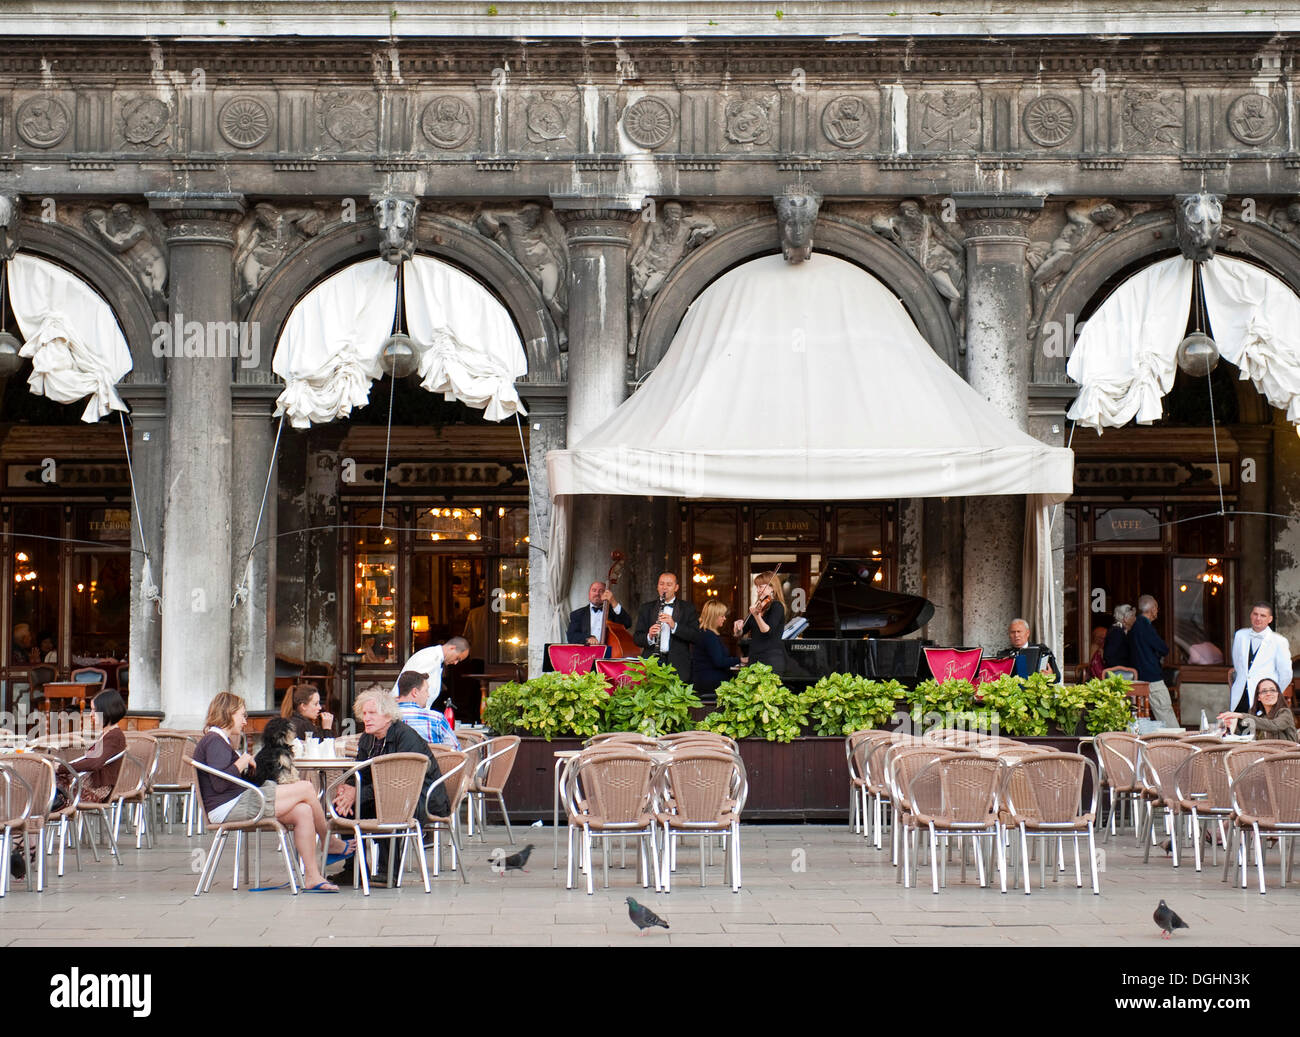 Best Cafes In Venice Italy